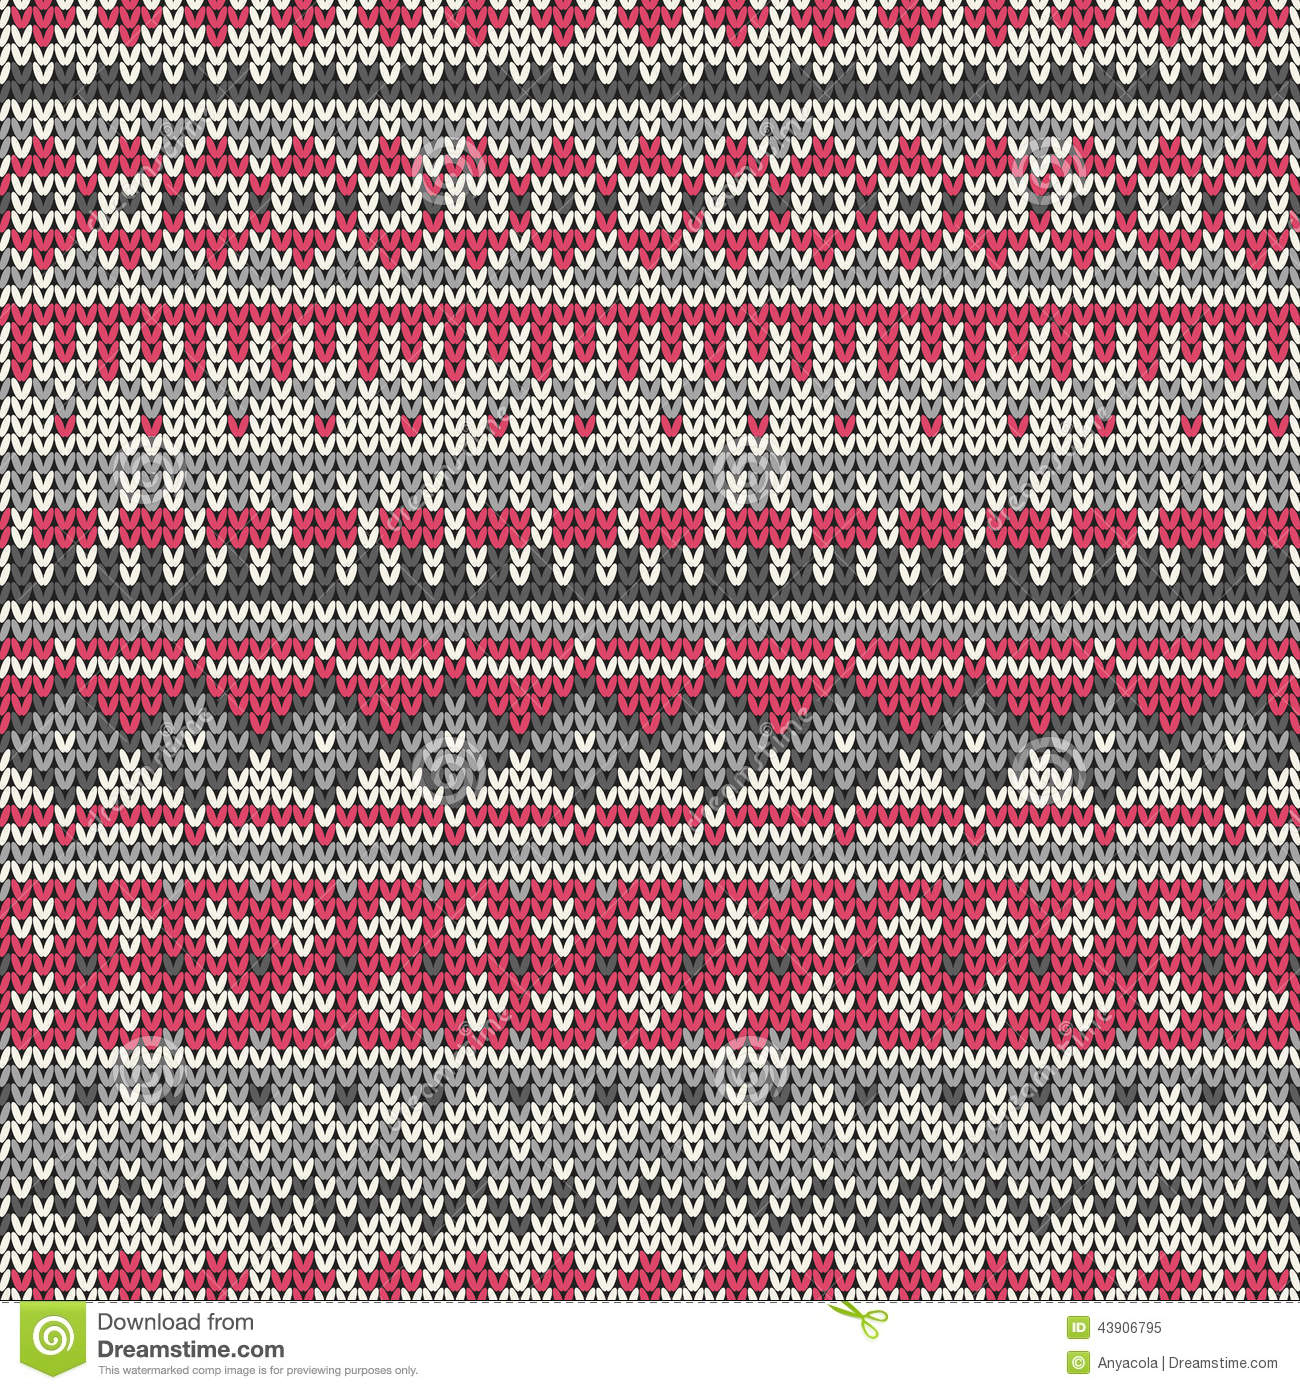 Fairisle Knitting Patterns Free Fair Isle Knitting Patterns Easy To Do Thefashiontamer